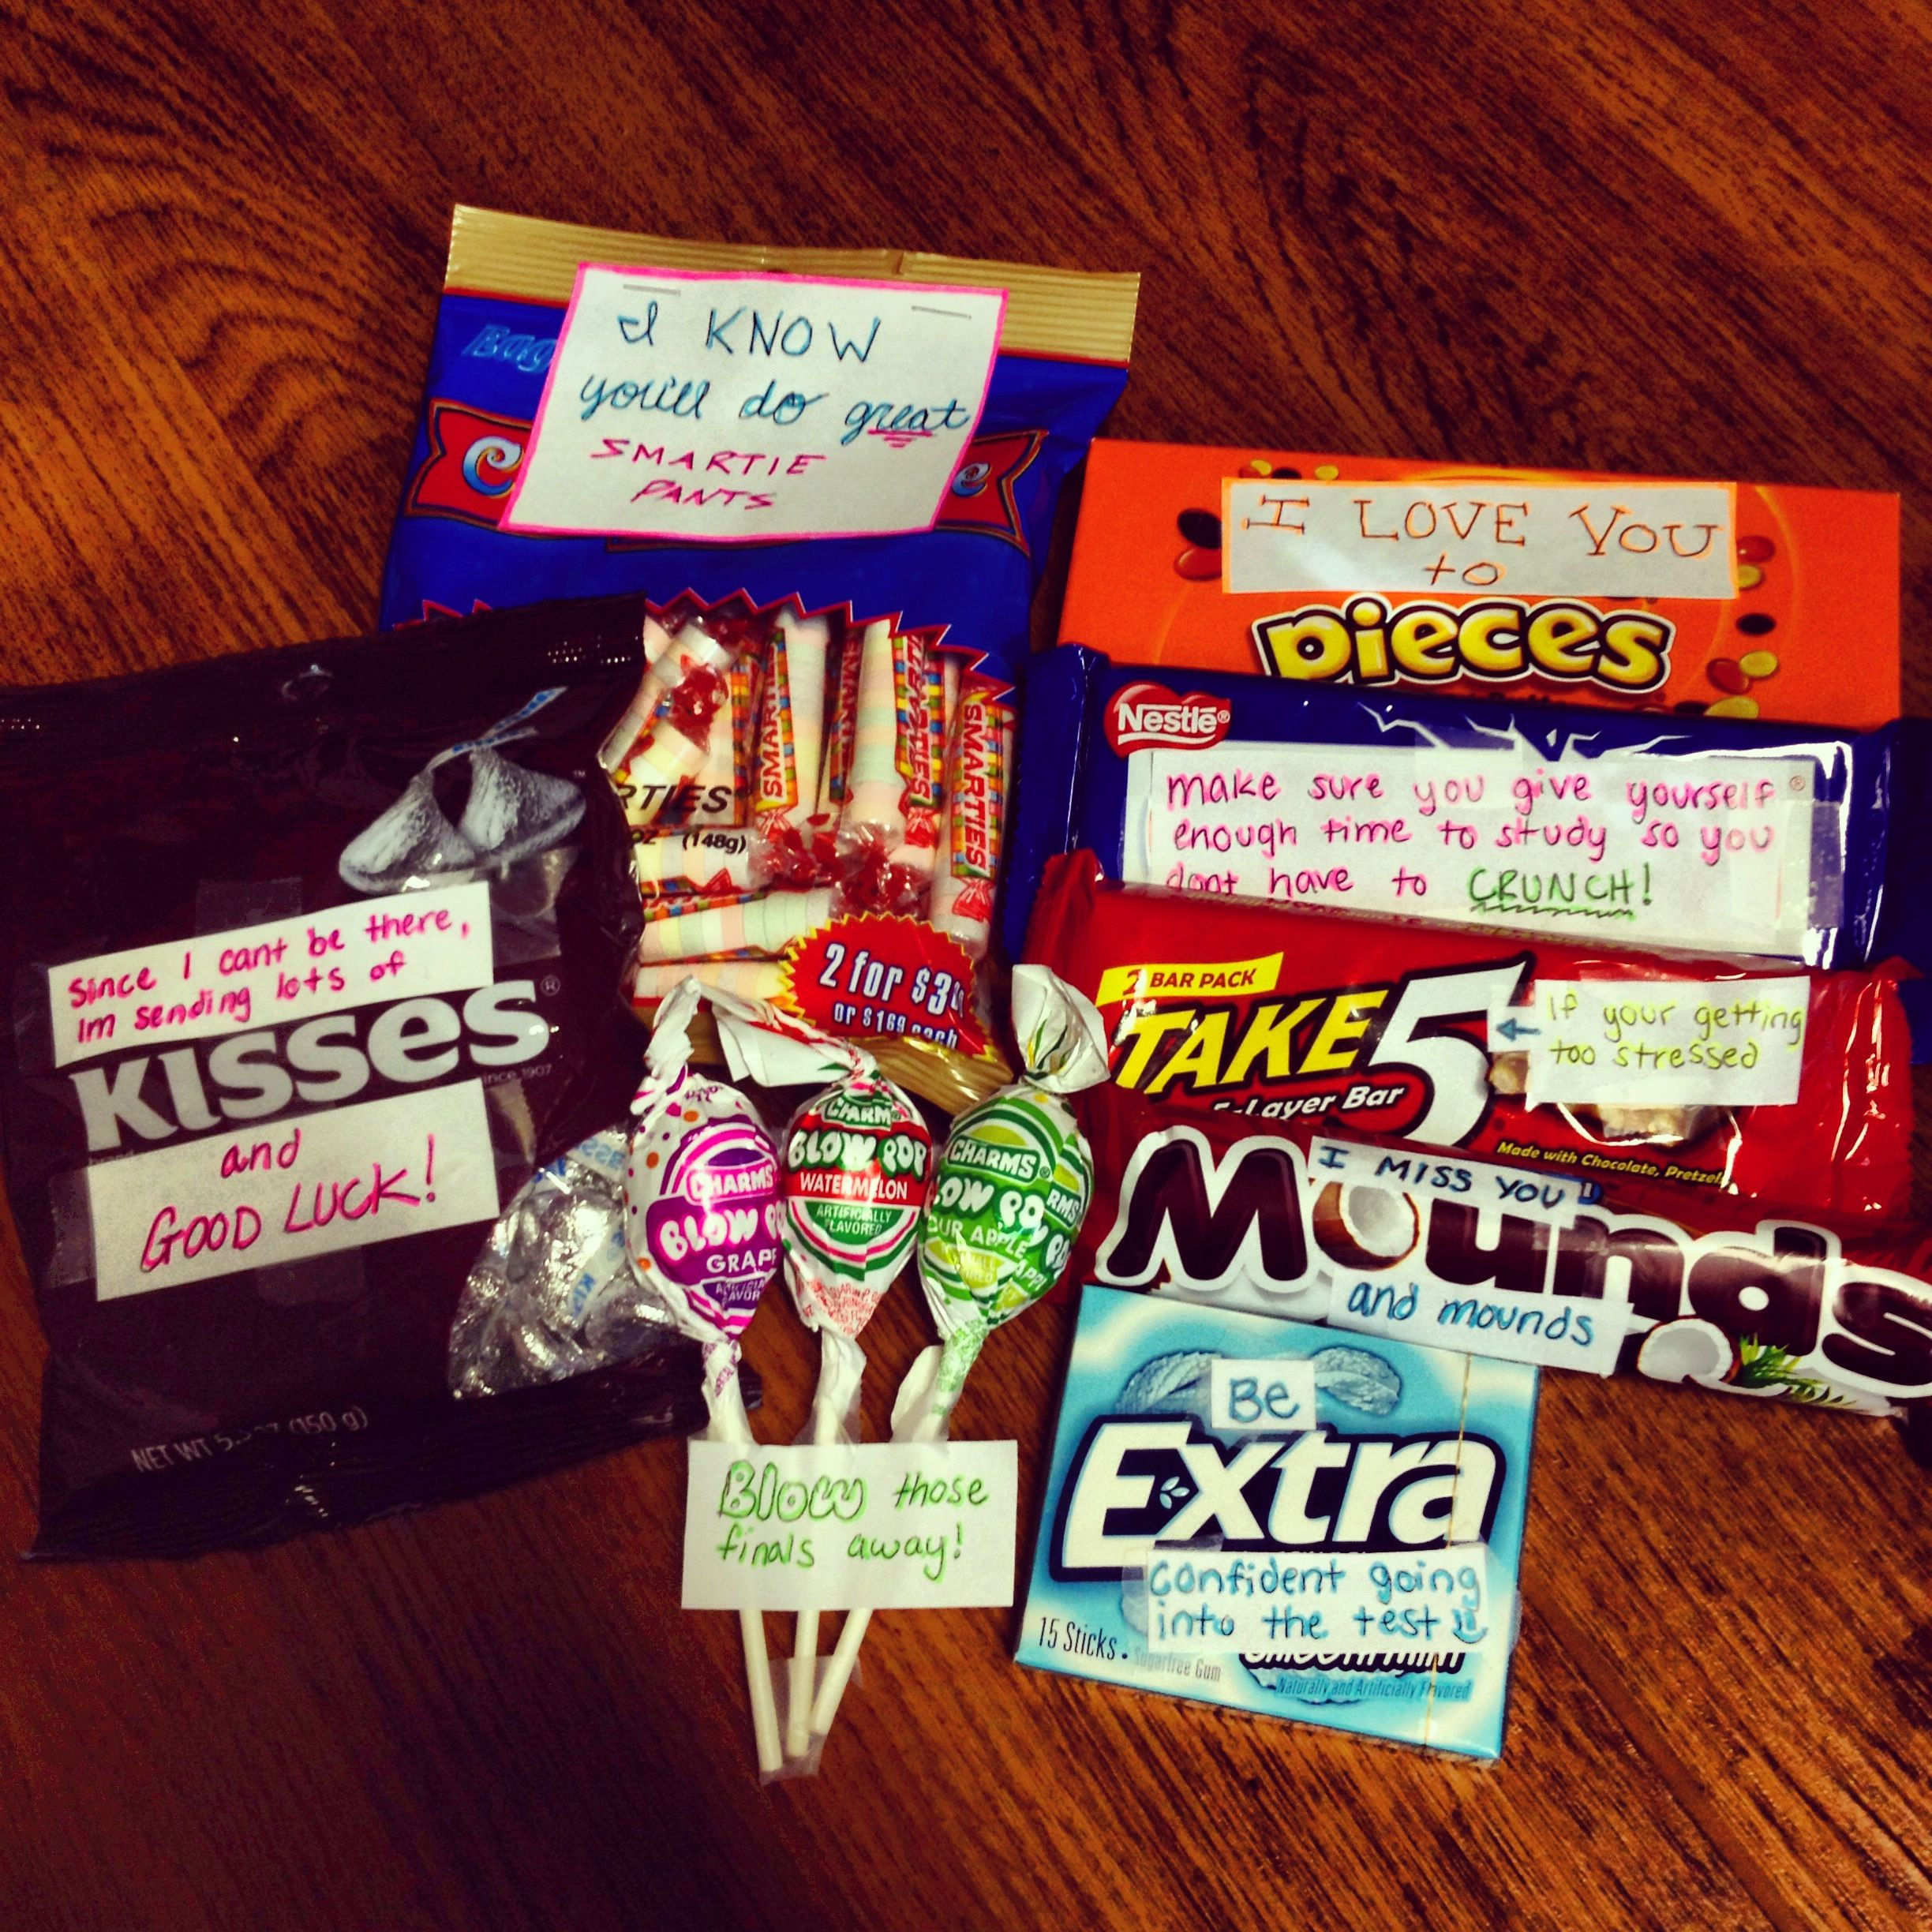 Admirable Exams College Care Package Ideas Pinterest Finals Care Package Boyfriend Good Ideas Pinterest College Care Package Ideas Boyfriend Finals Care Package